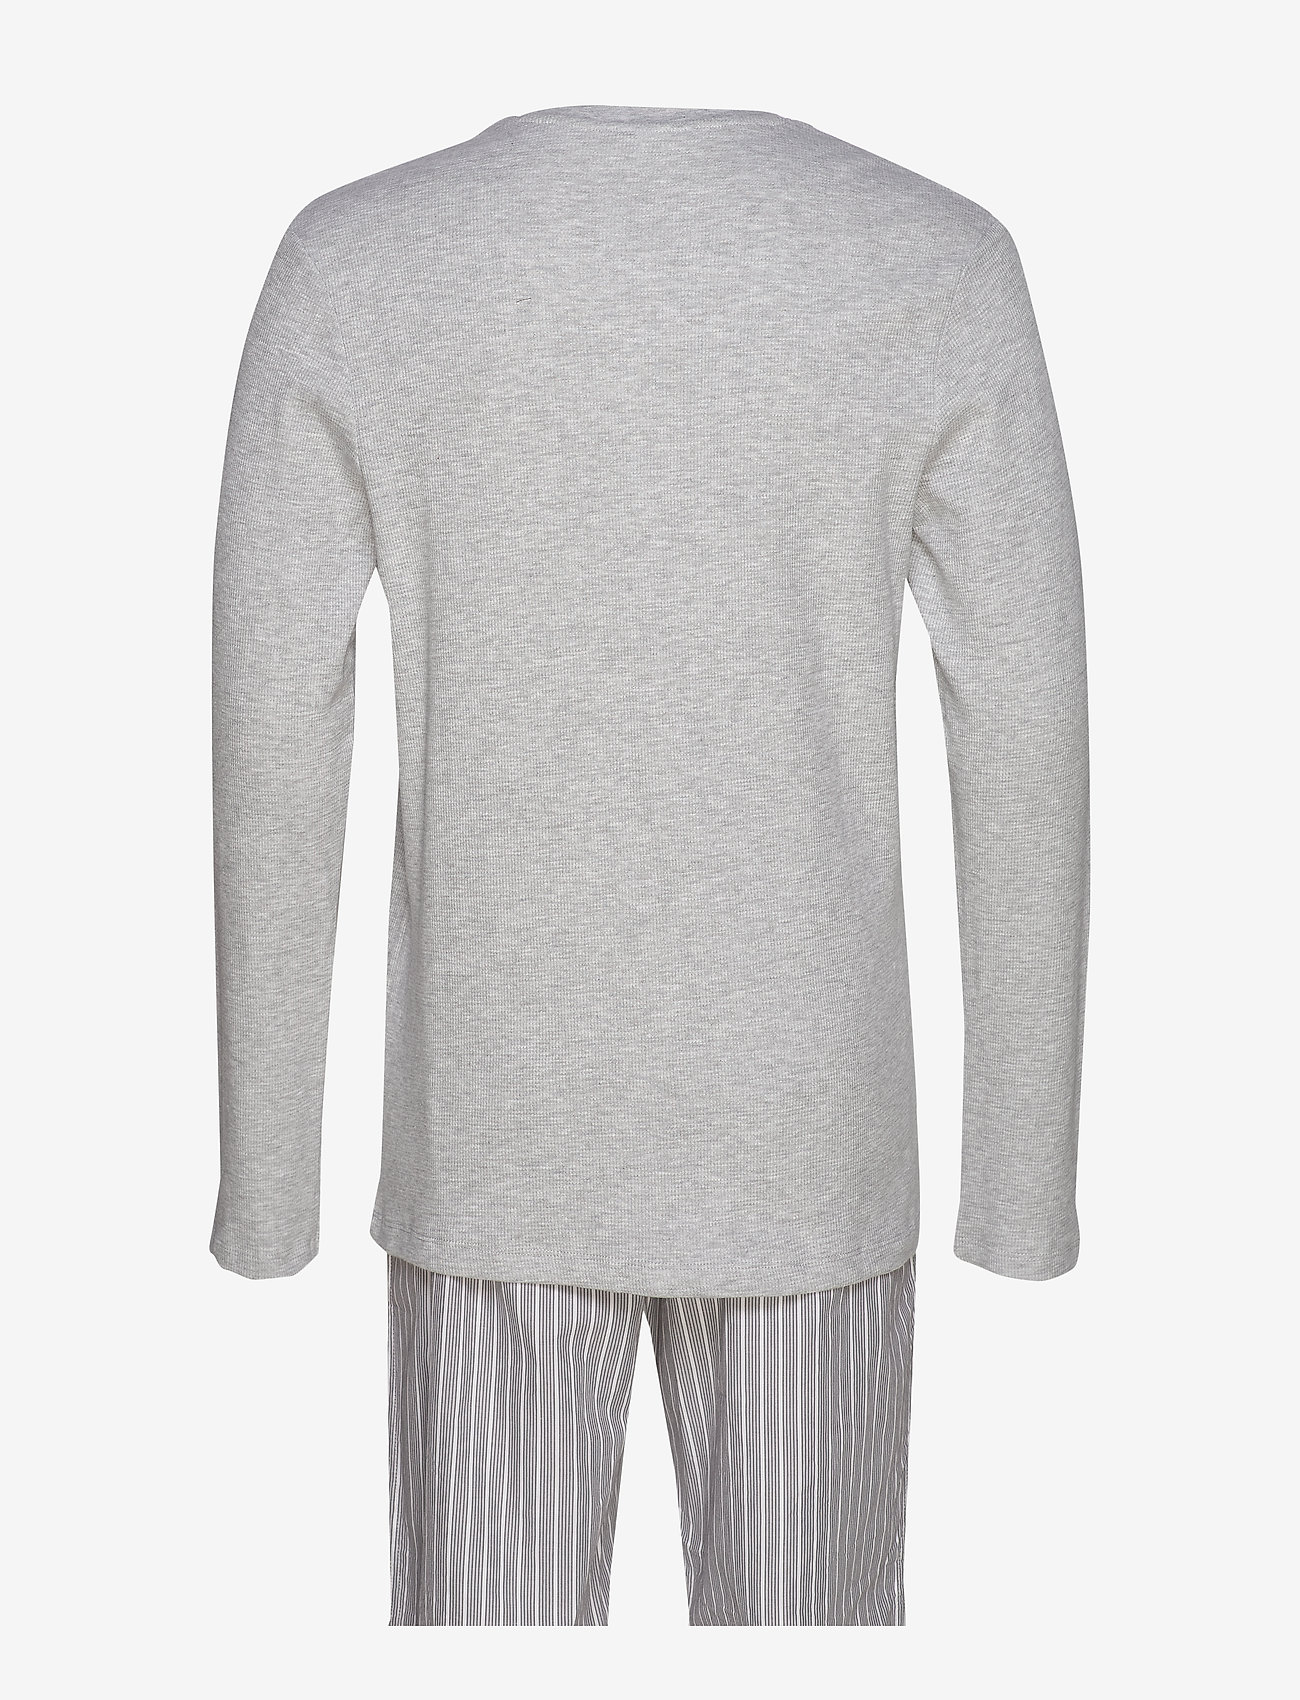 CR7 - CR7 Mens pyjamas - pyjamas - grey - 1